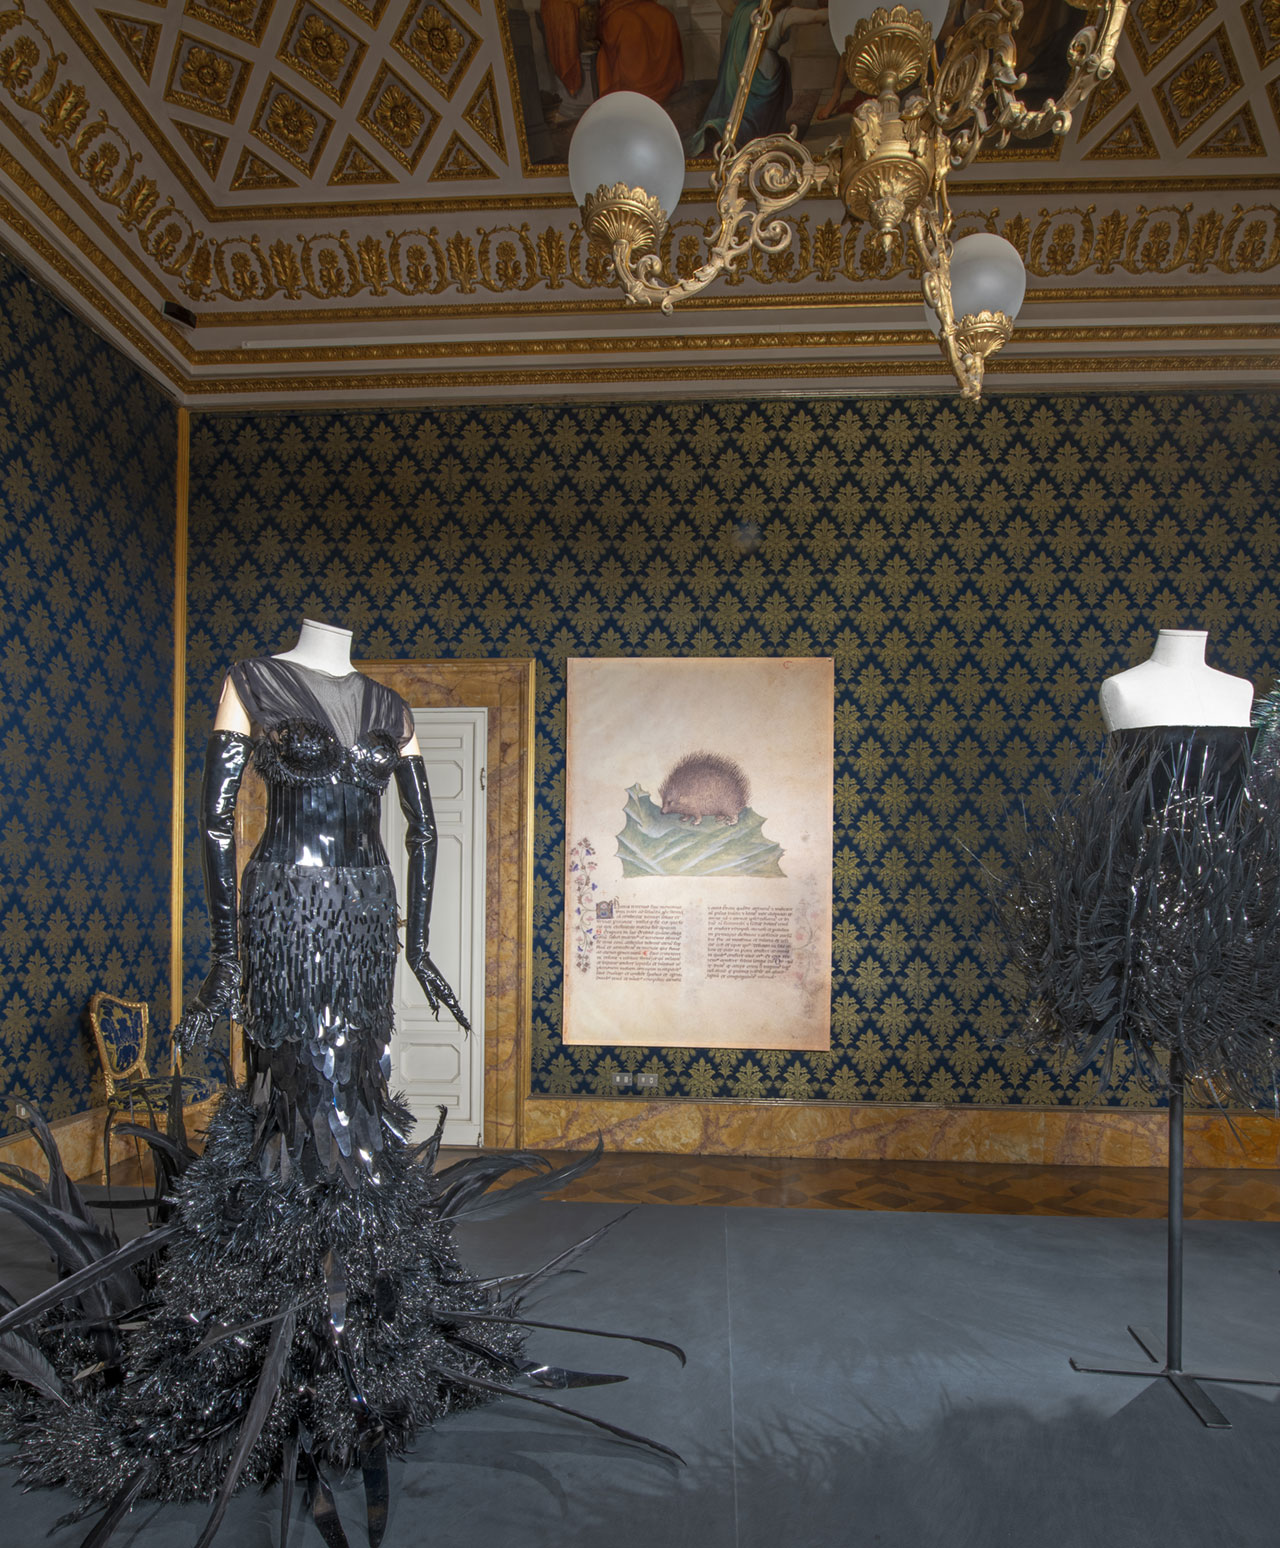 "Exhibition view (from left to right): On Aura Tout Vu, Dress""Jet lag"", Spring/Summer 2016 Couture. Iris van Herpen, Dress, Voltage Collection, Spring/Summer 2013 Couture. Photo © Antonio Quattrone."